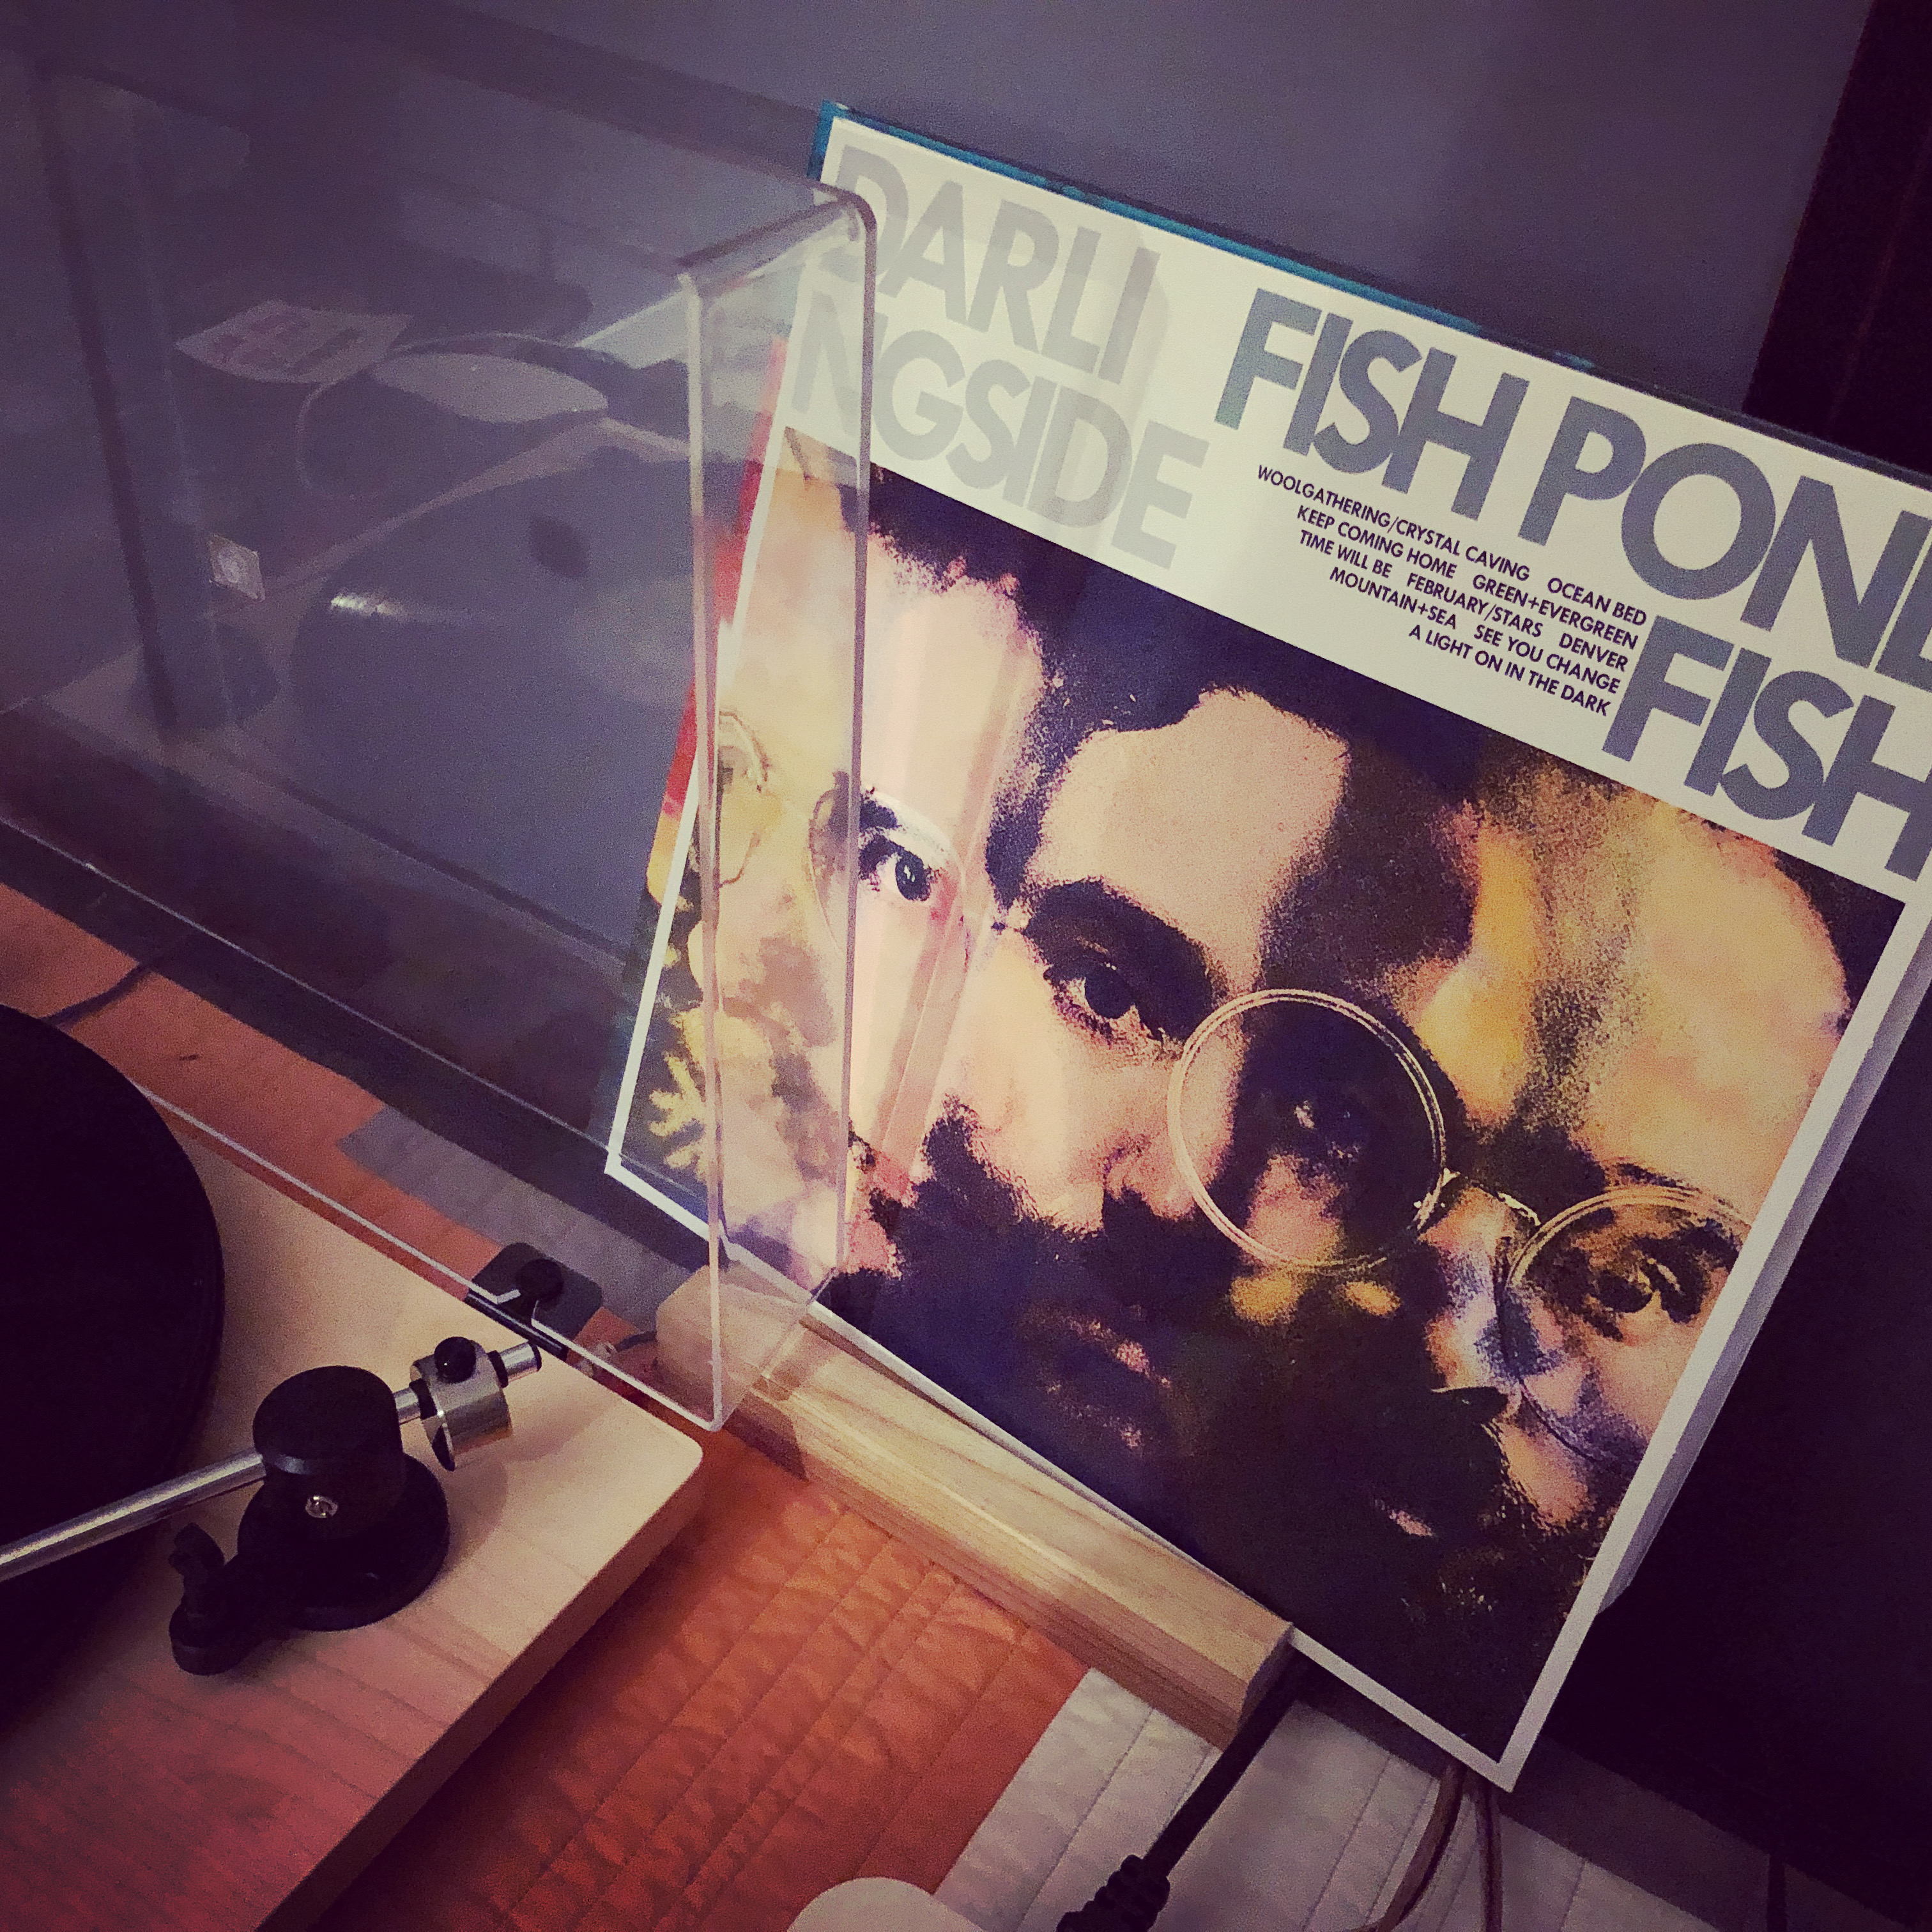 Photo of the album cover for Darlingside's Fish Pond Fish: four faces merged into three sets of overlapping eyes